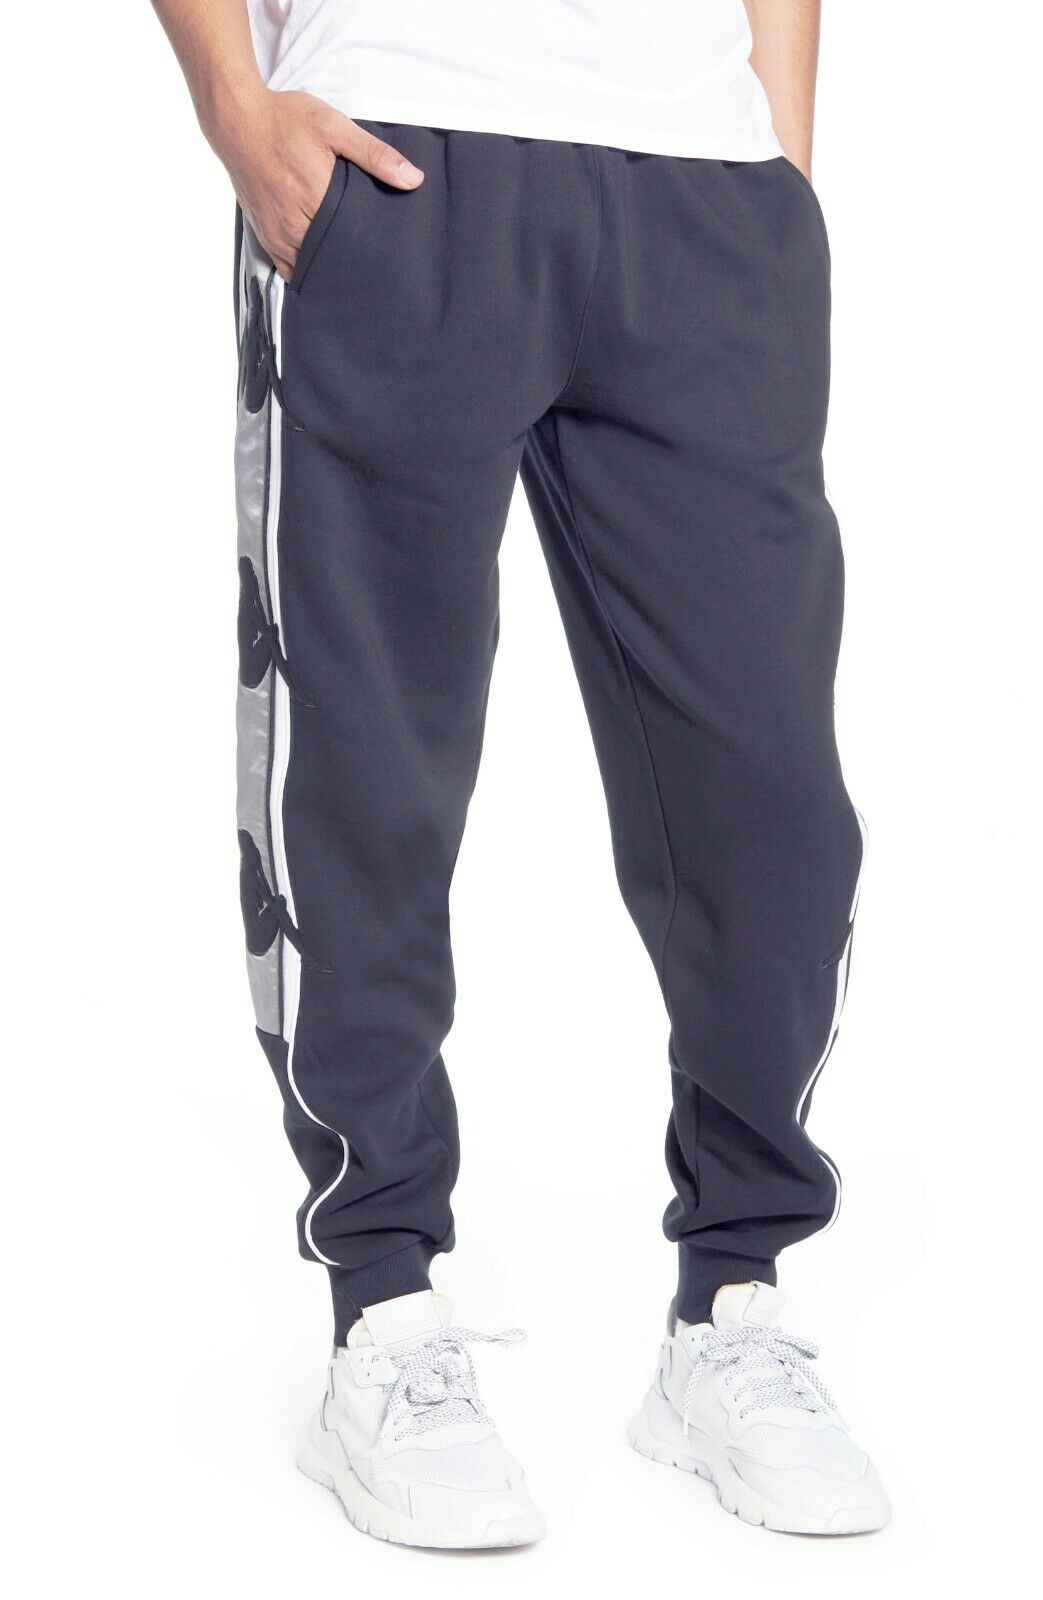 Kappa Authentic Zallard Fleece Sweatpant in Blue Greystone